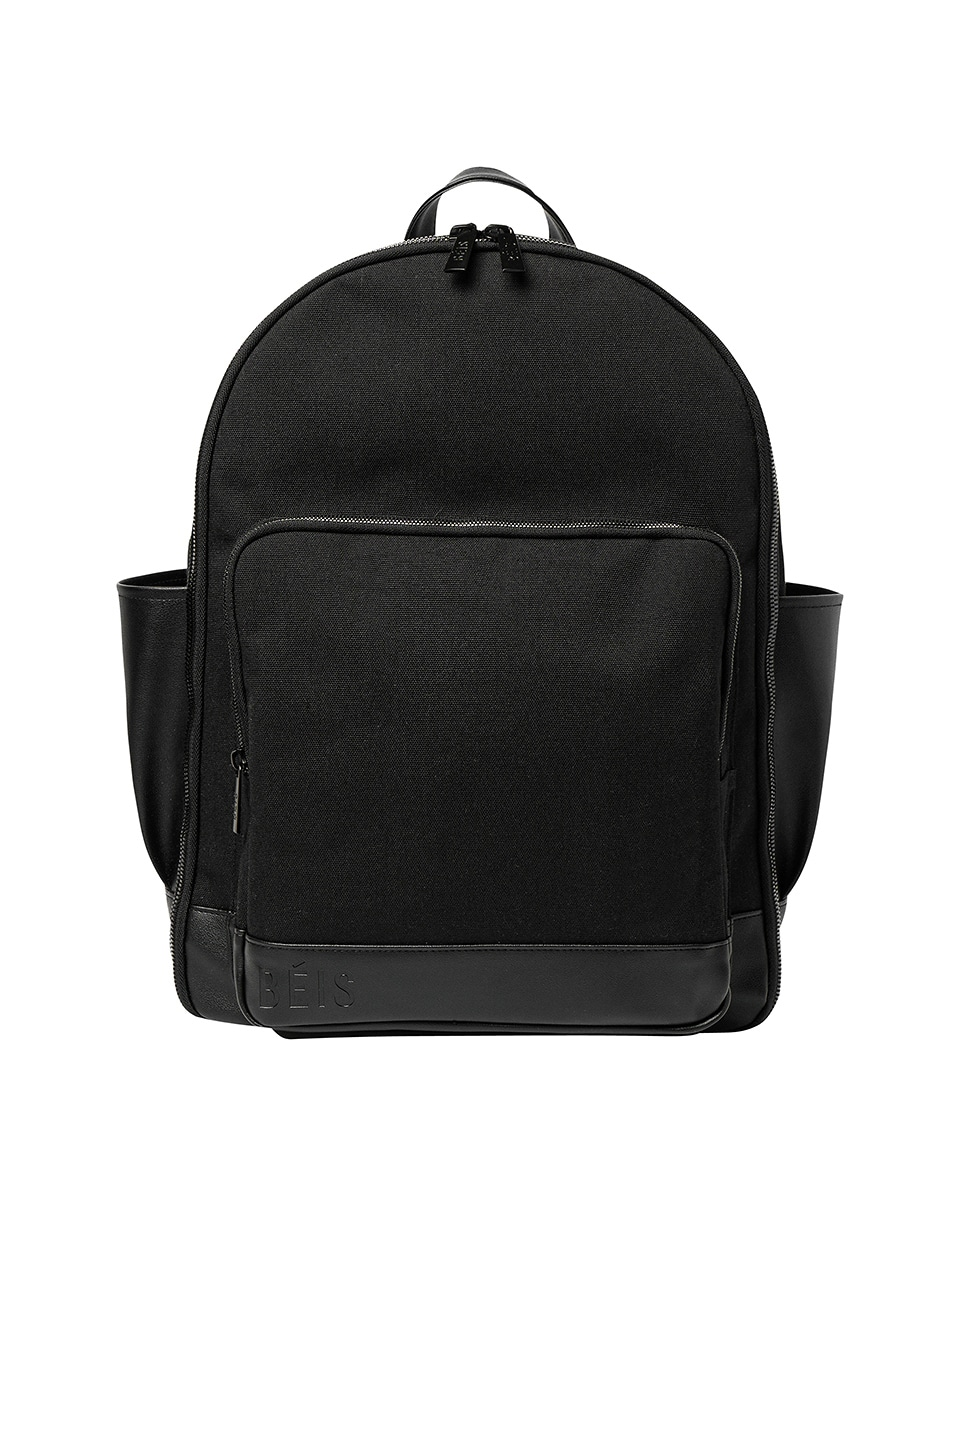 BEIS The Backpack in Black